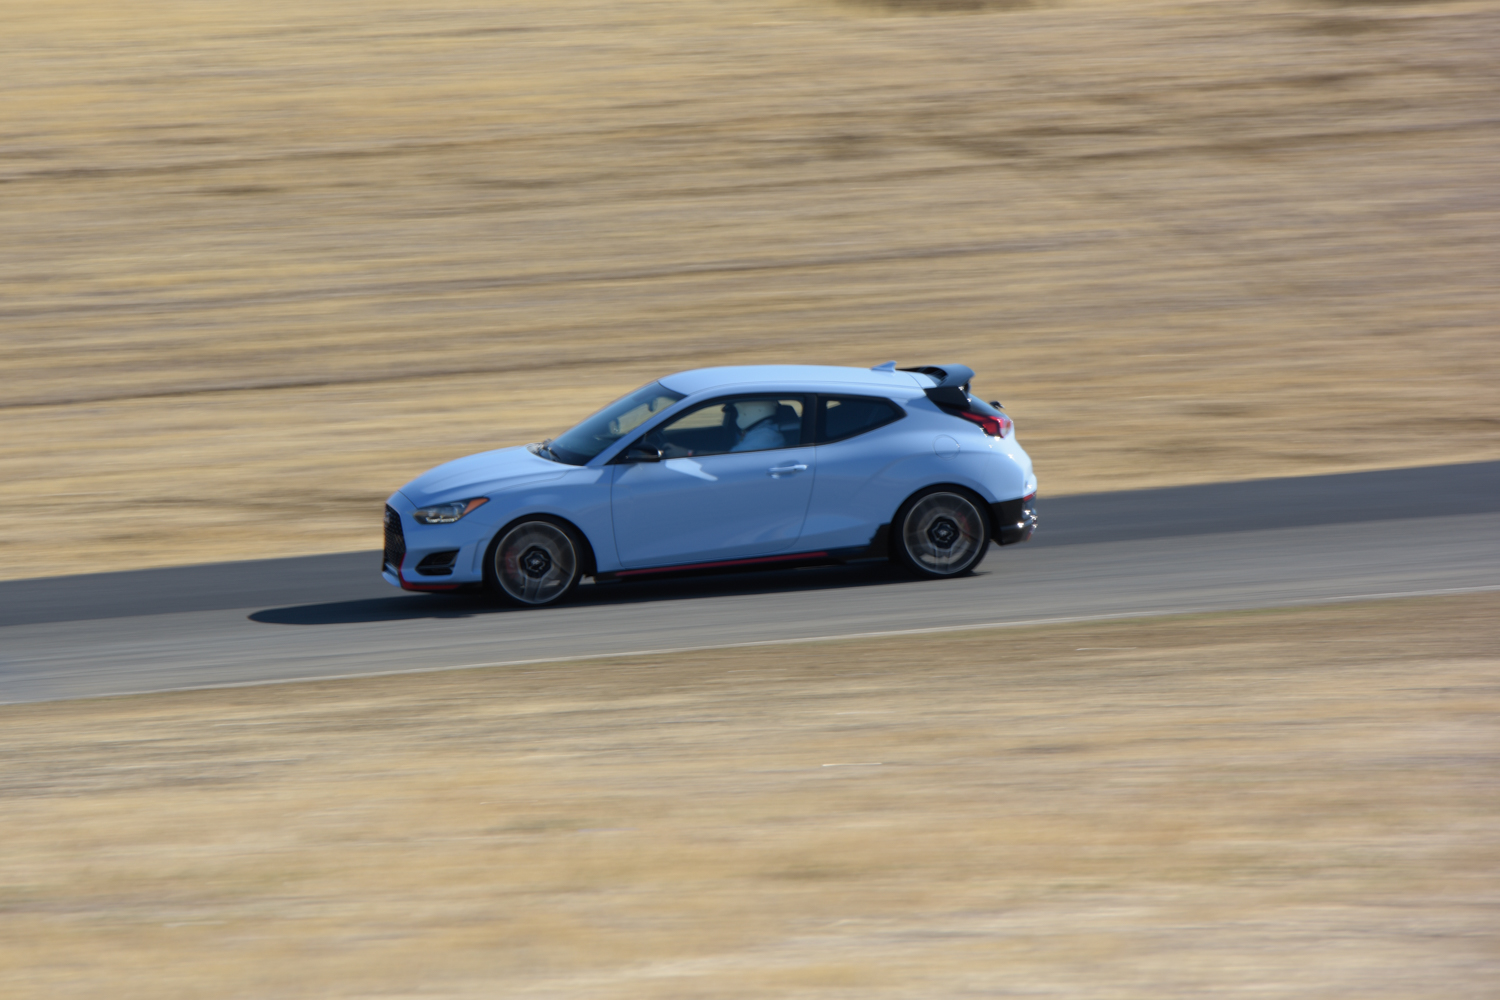 2019 Hyundai Veloster N on track side profile